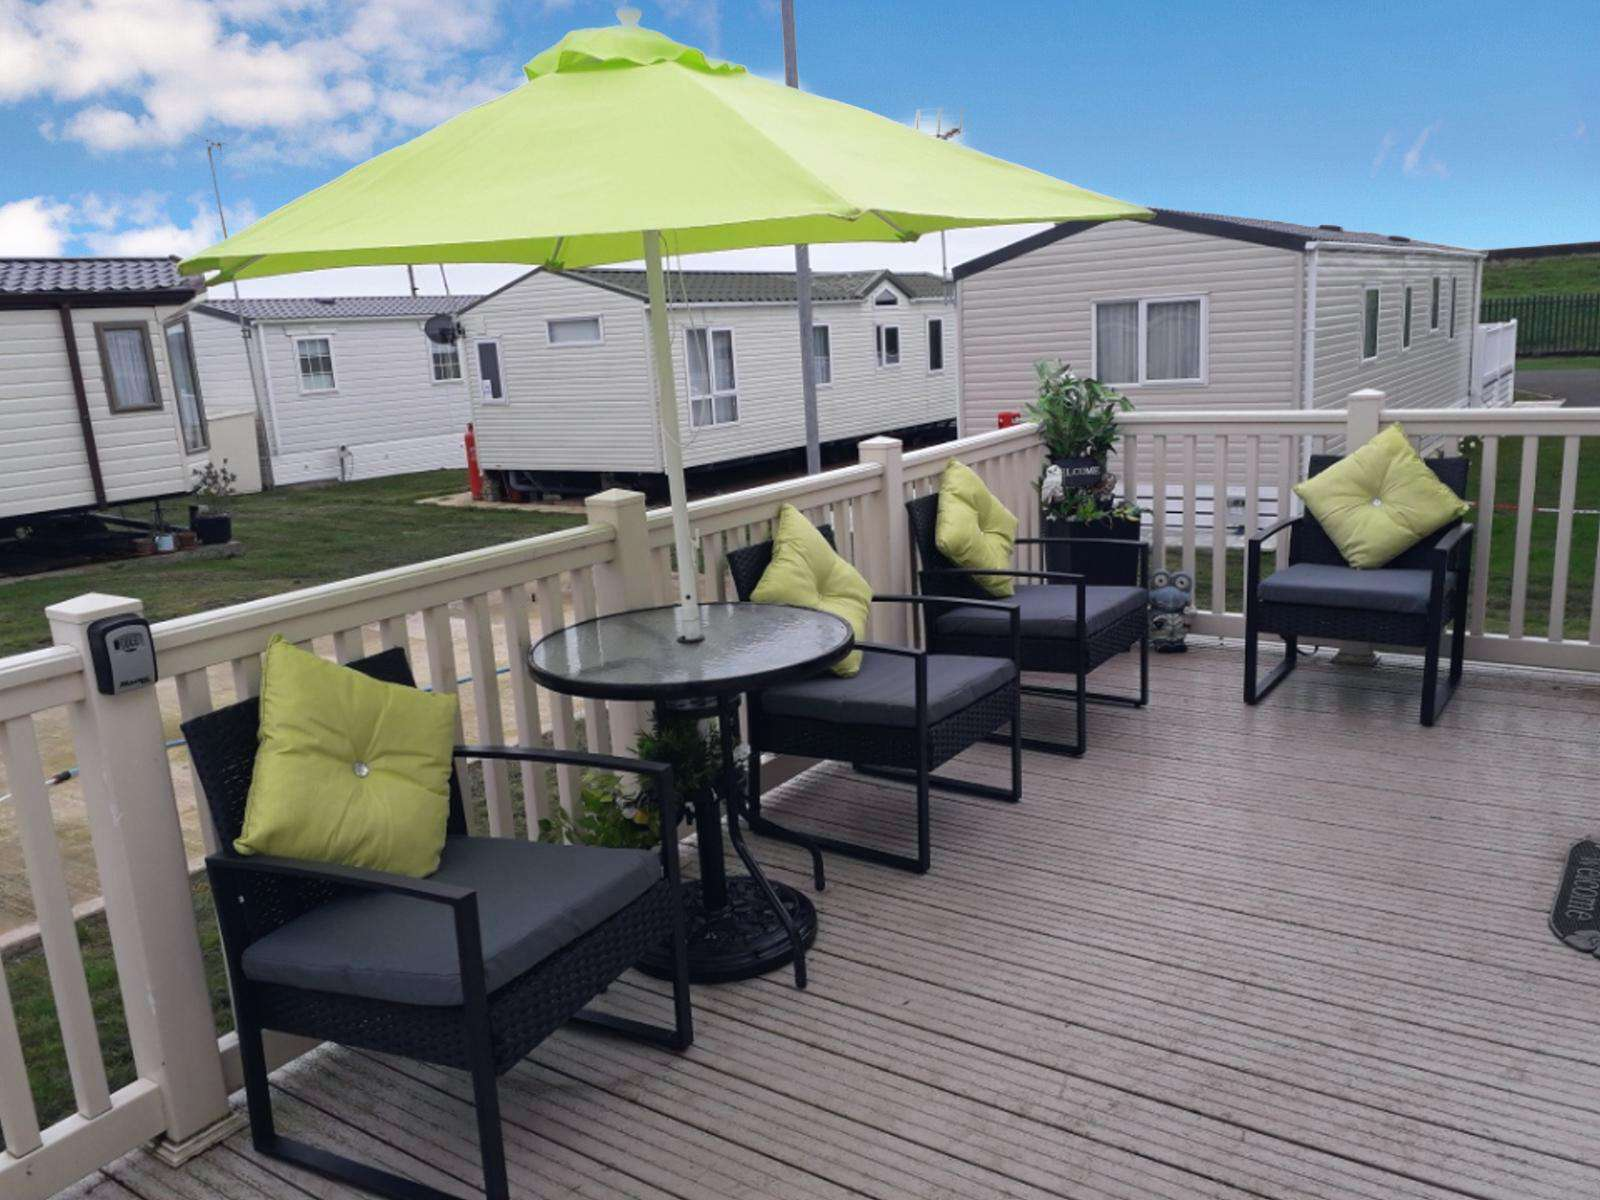 Enjoy the use of outdoor furniture provided for you to relax!